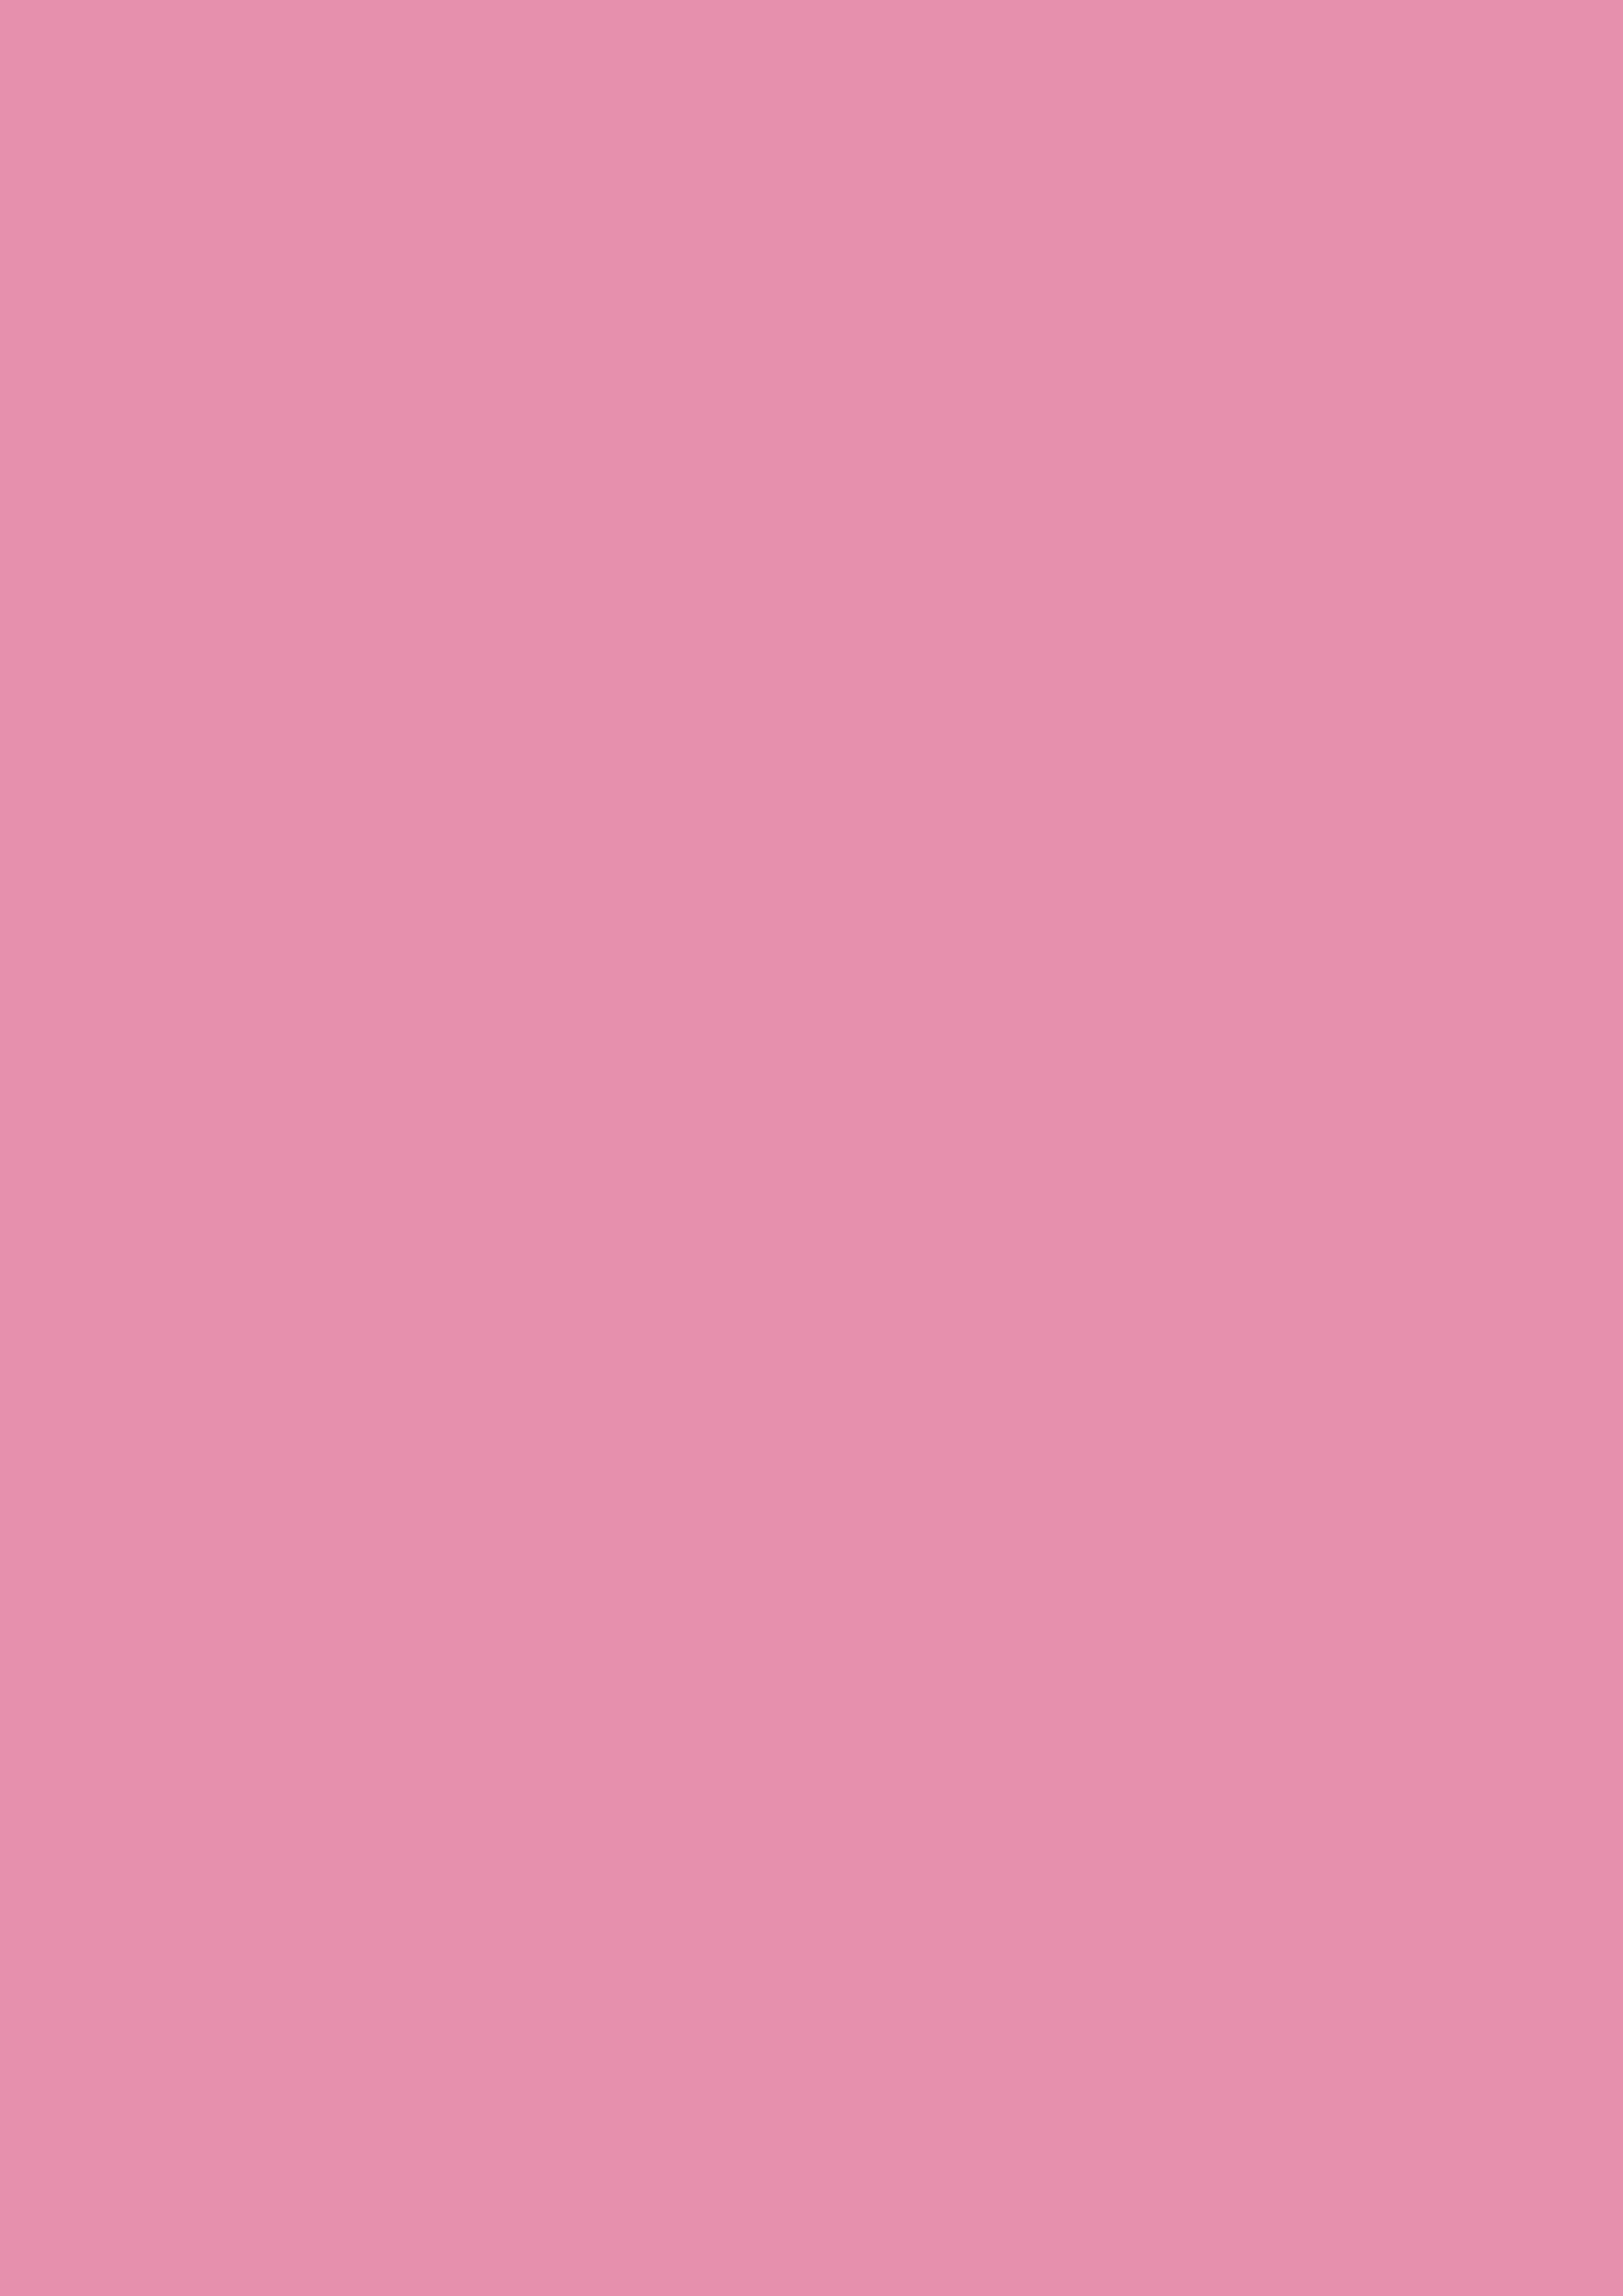 2480x3508 Light Thulian Pink Solid Color Background